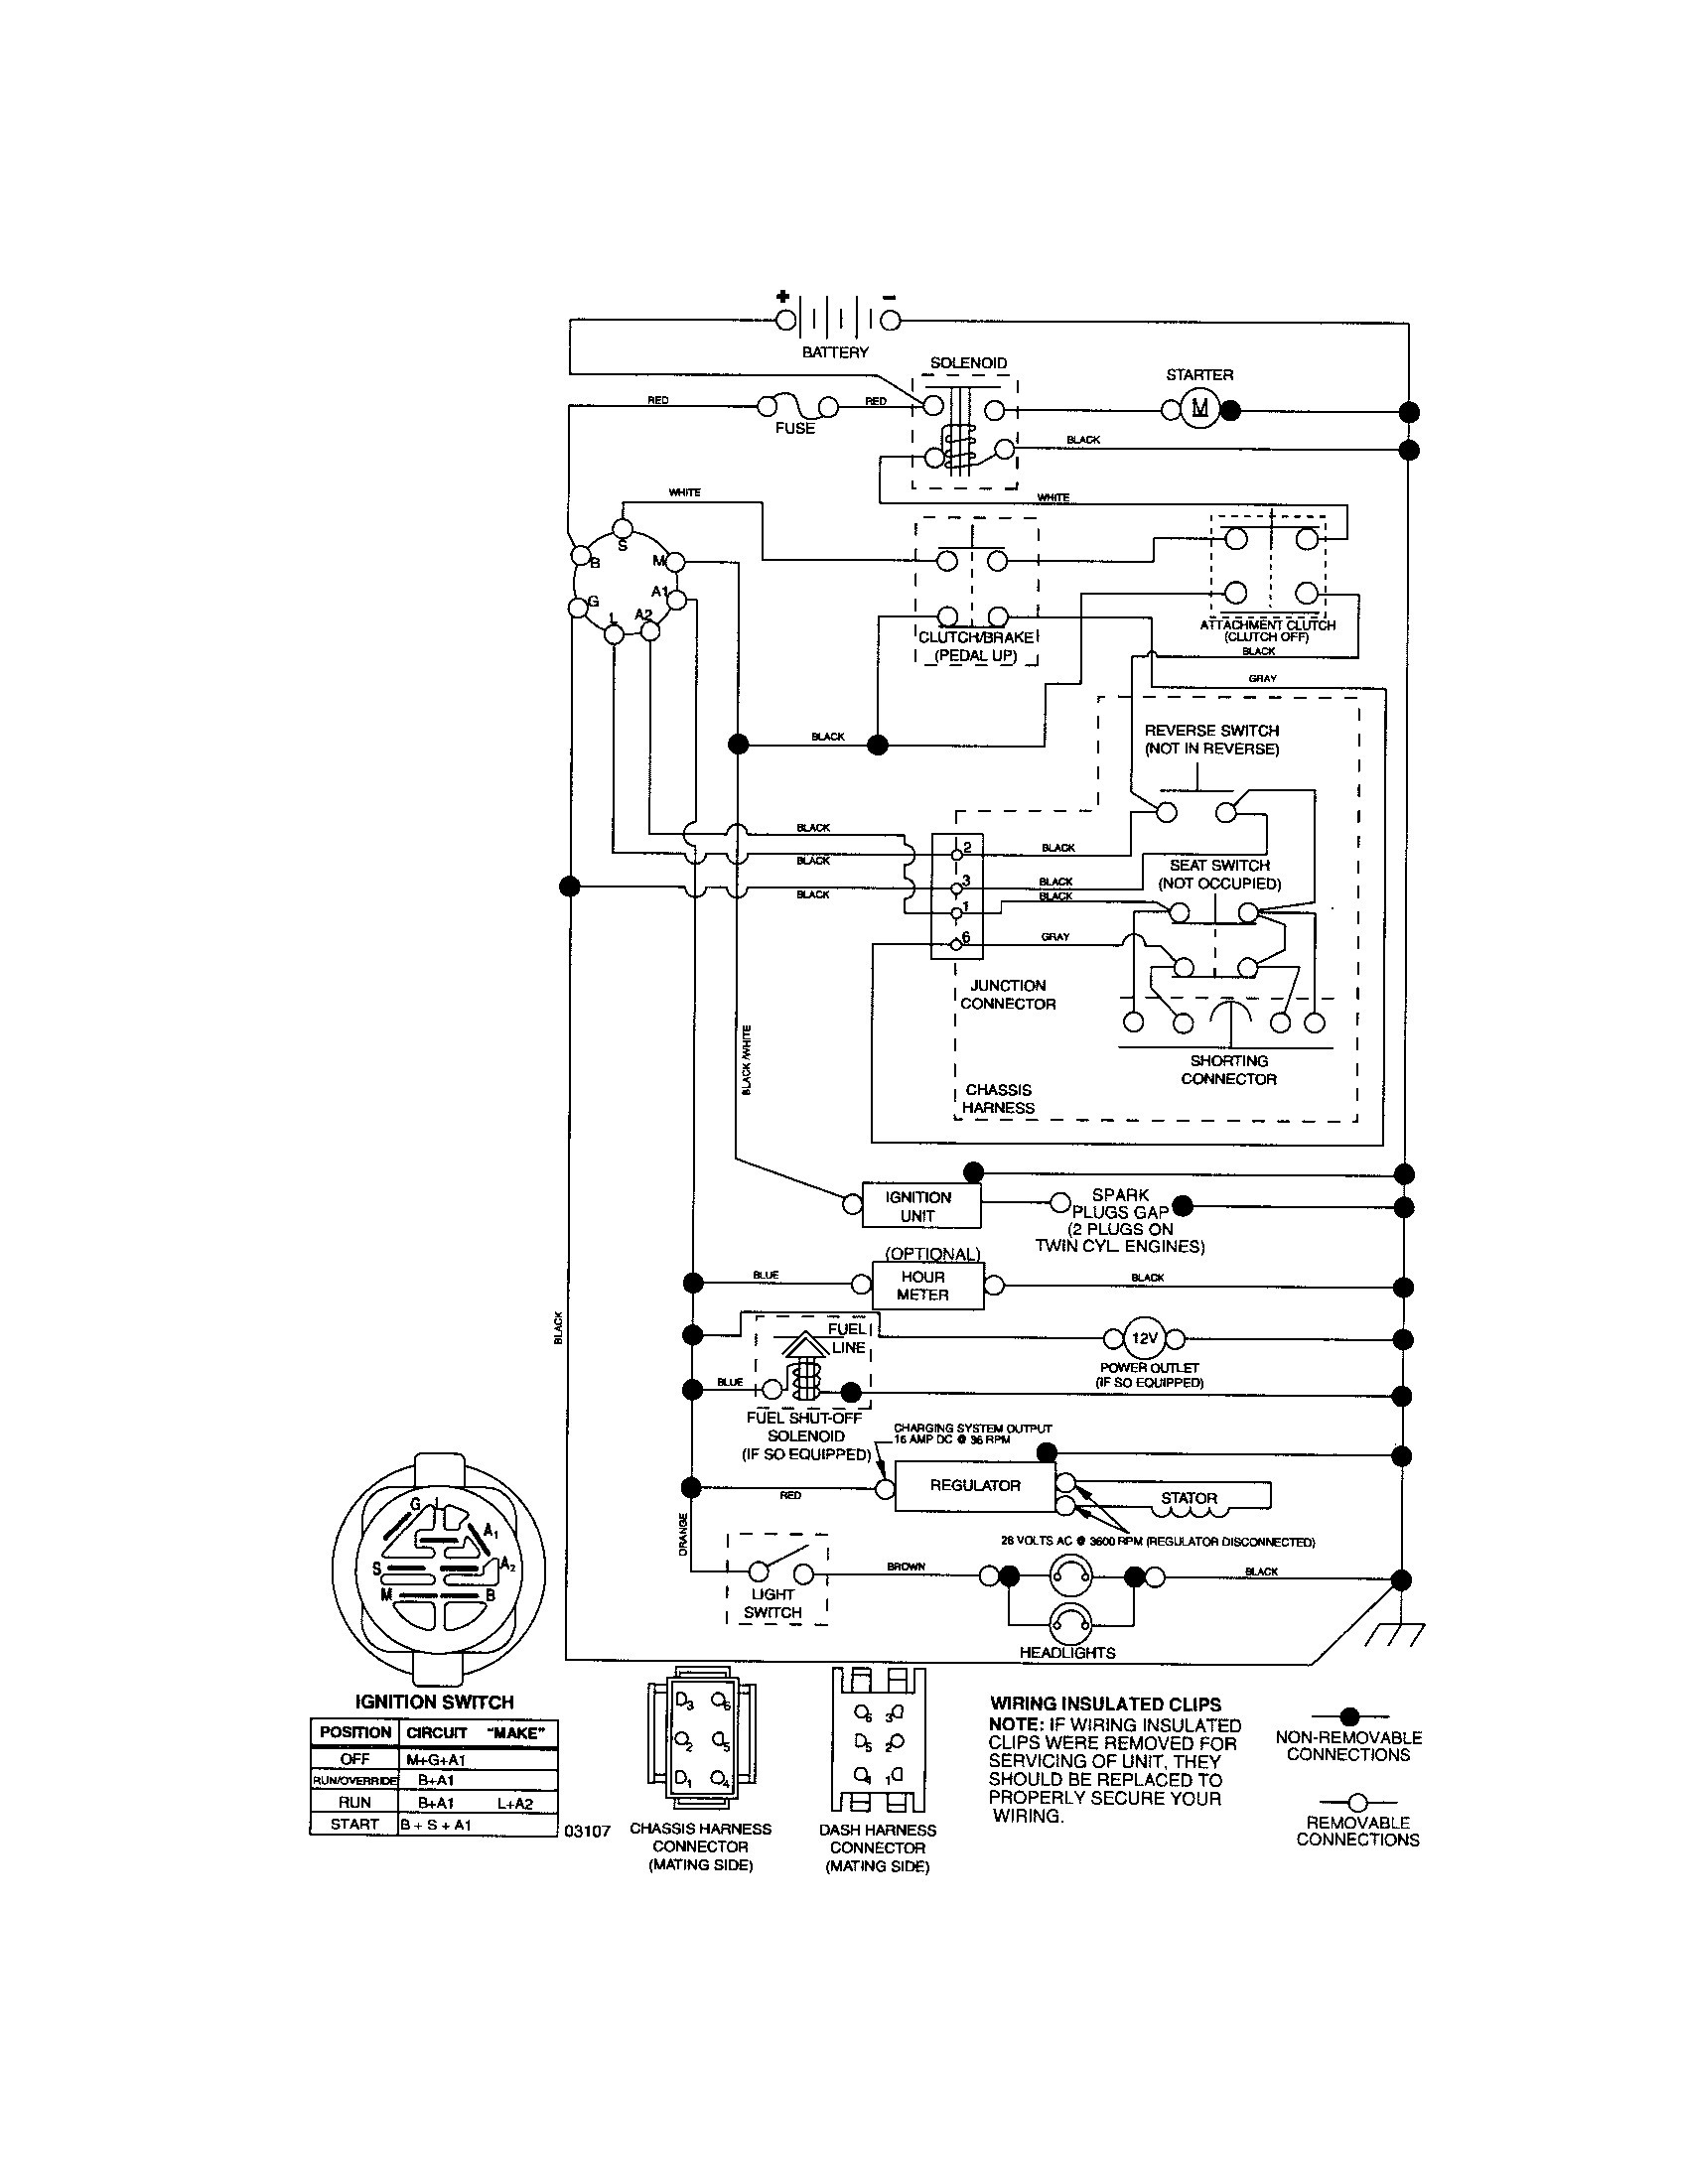 Wiring Diagram for Gt 5000 Tractor Craftsman Gt 5000 Wiring Diagram Wiring Diagram – Strategiccontentmarketing Of Wiring Diagram for Gt 5000 Tractor